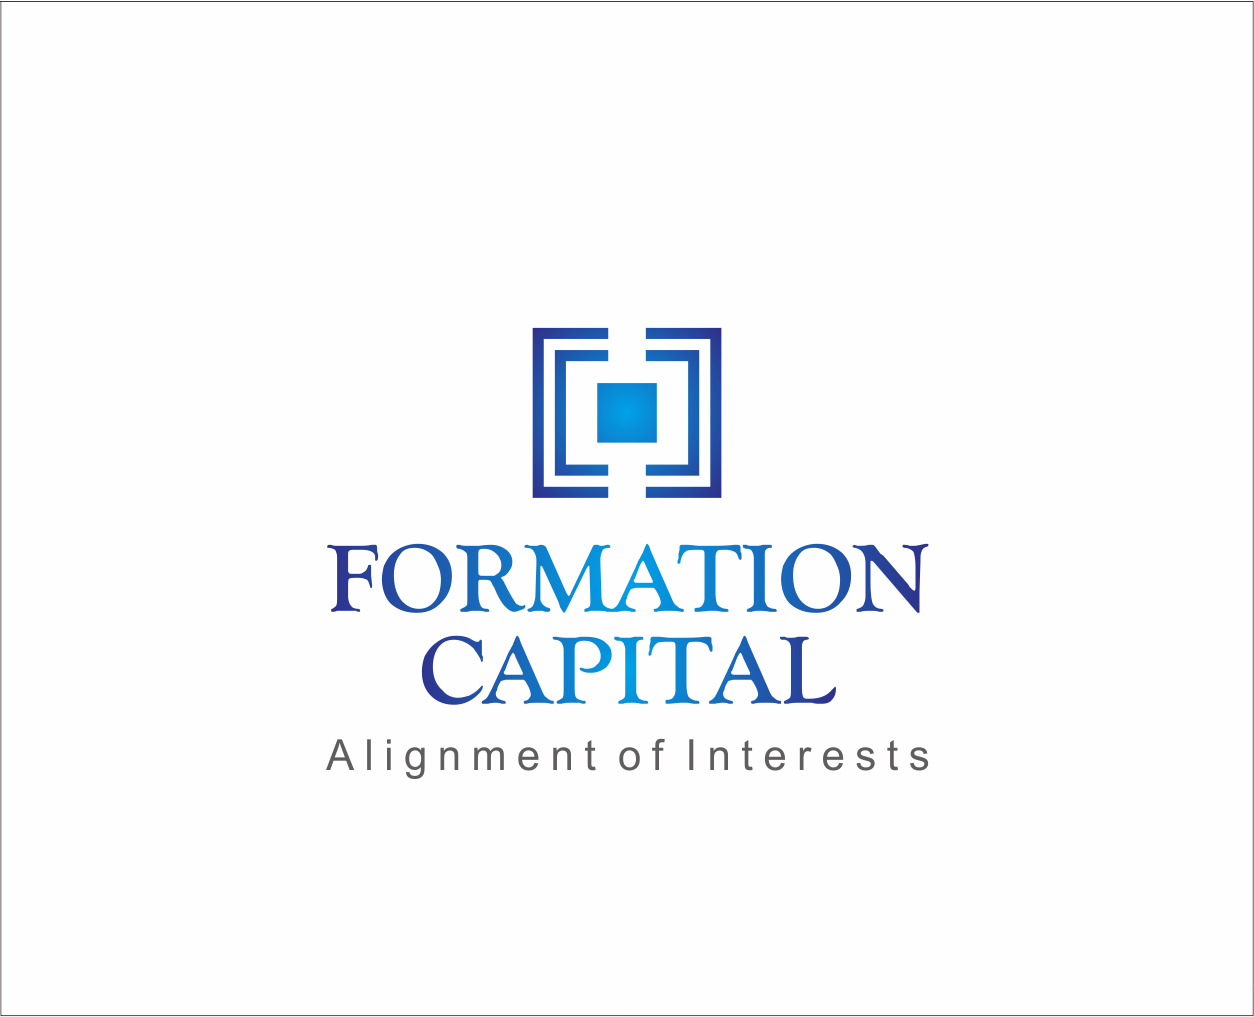 Logo Design by Armada Jamaluddin - Entry No. 202 in the Logo Design Contest Inspiring Logo Design for Formation Capital.